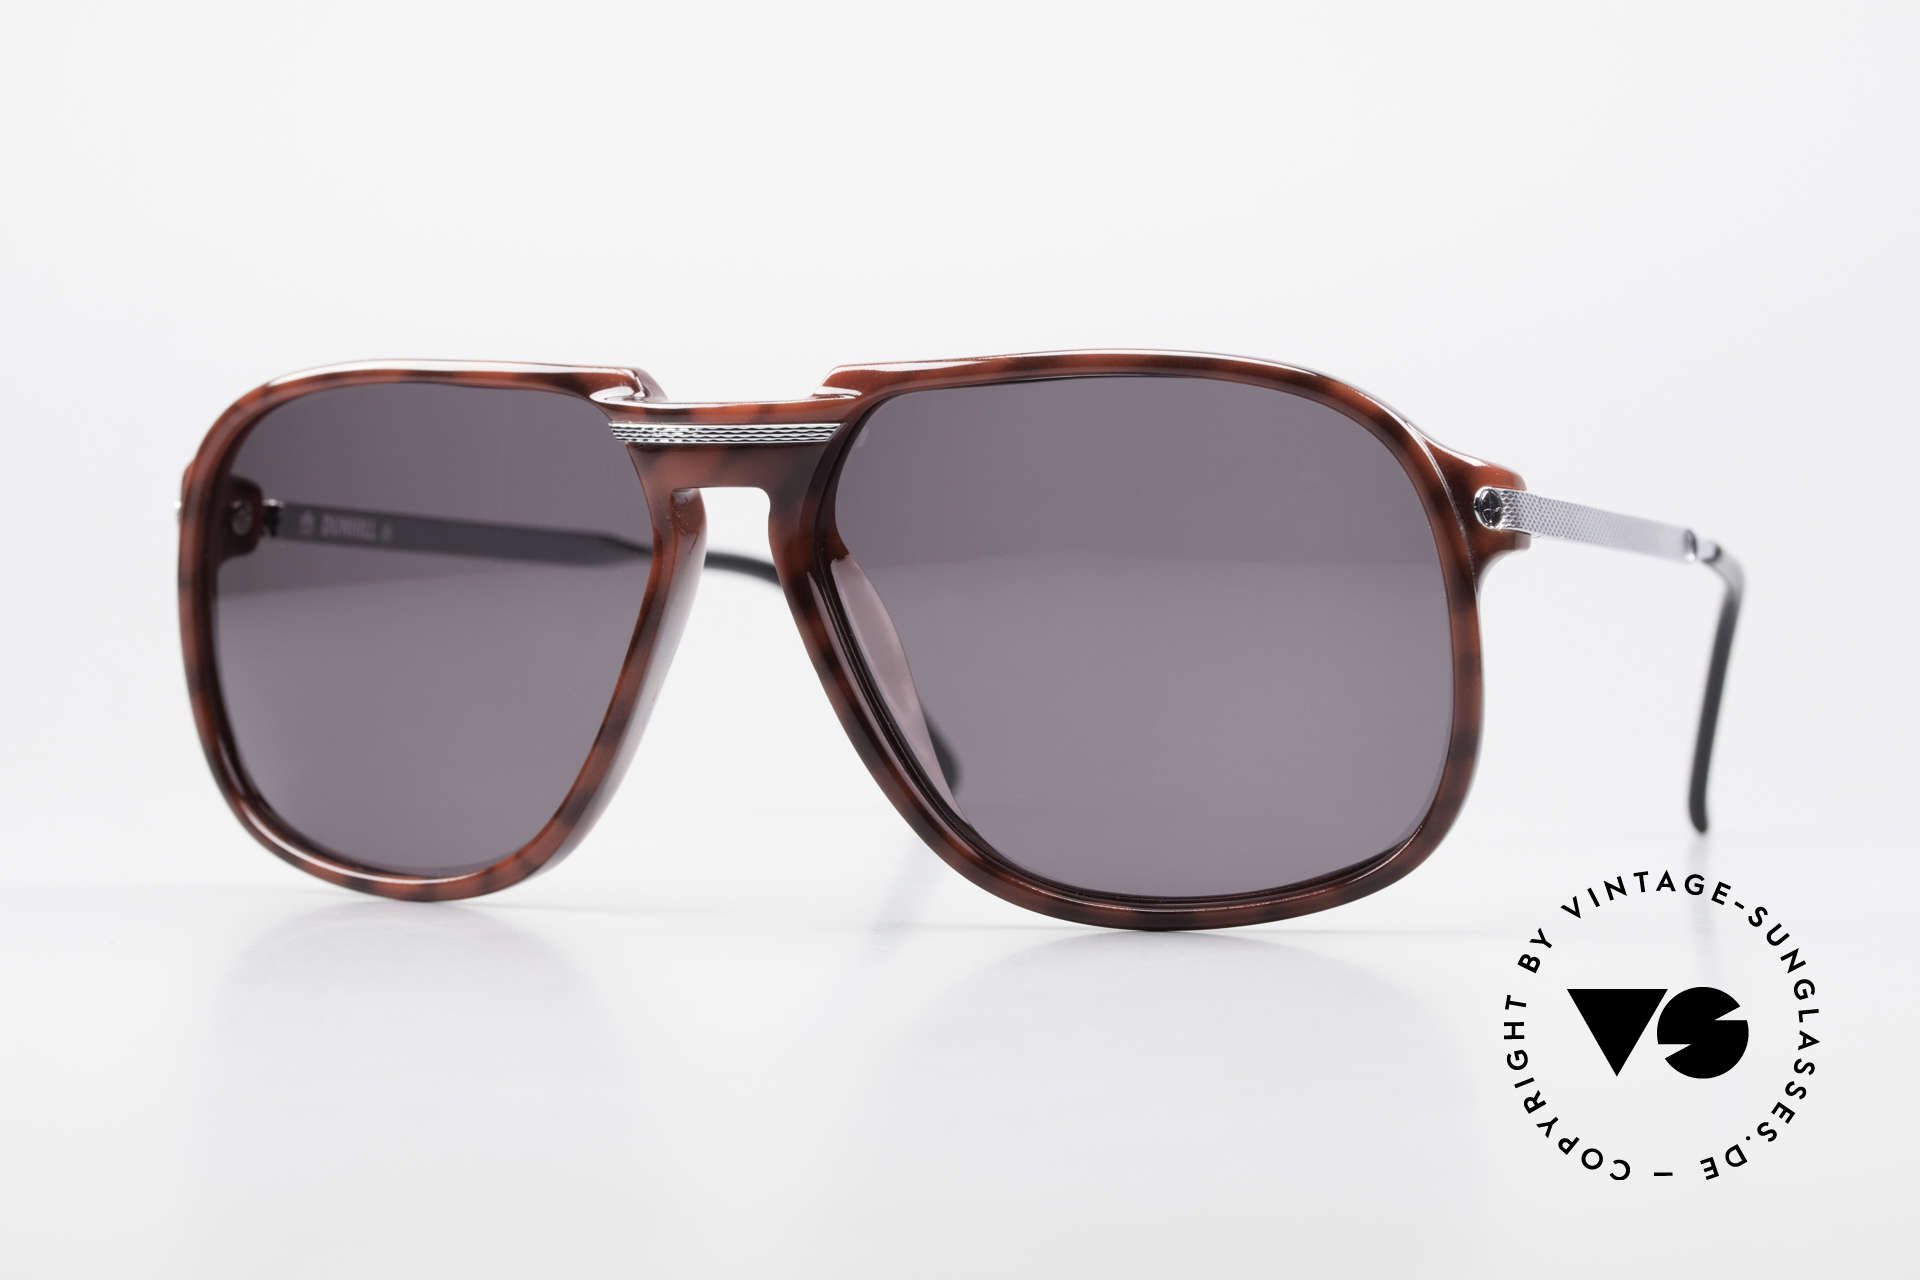 Dunhill 6005 Rare Old Men's Sunglasses 1984, real, old men's sunglasses by A. Dunhill from 1984, Made for Men